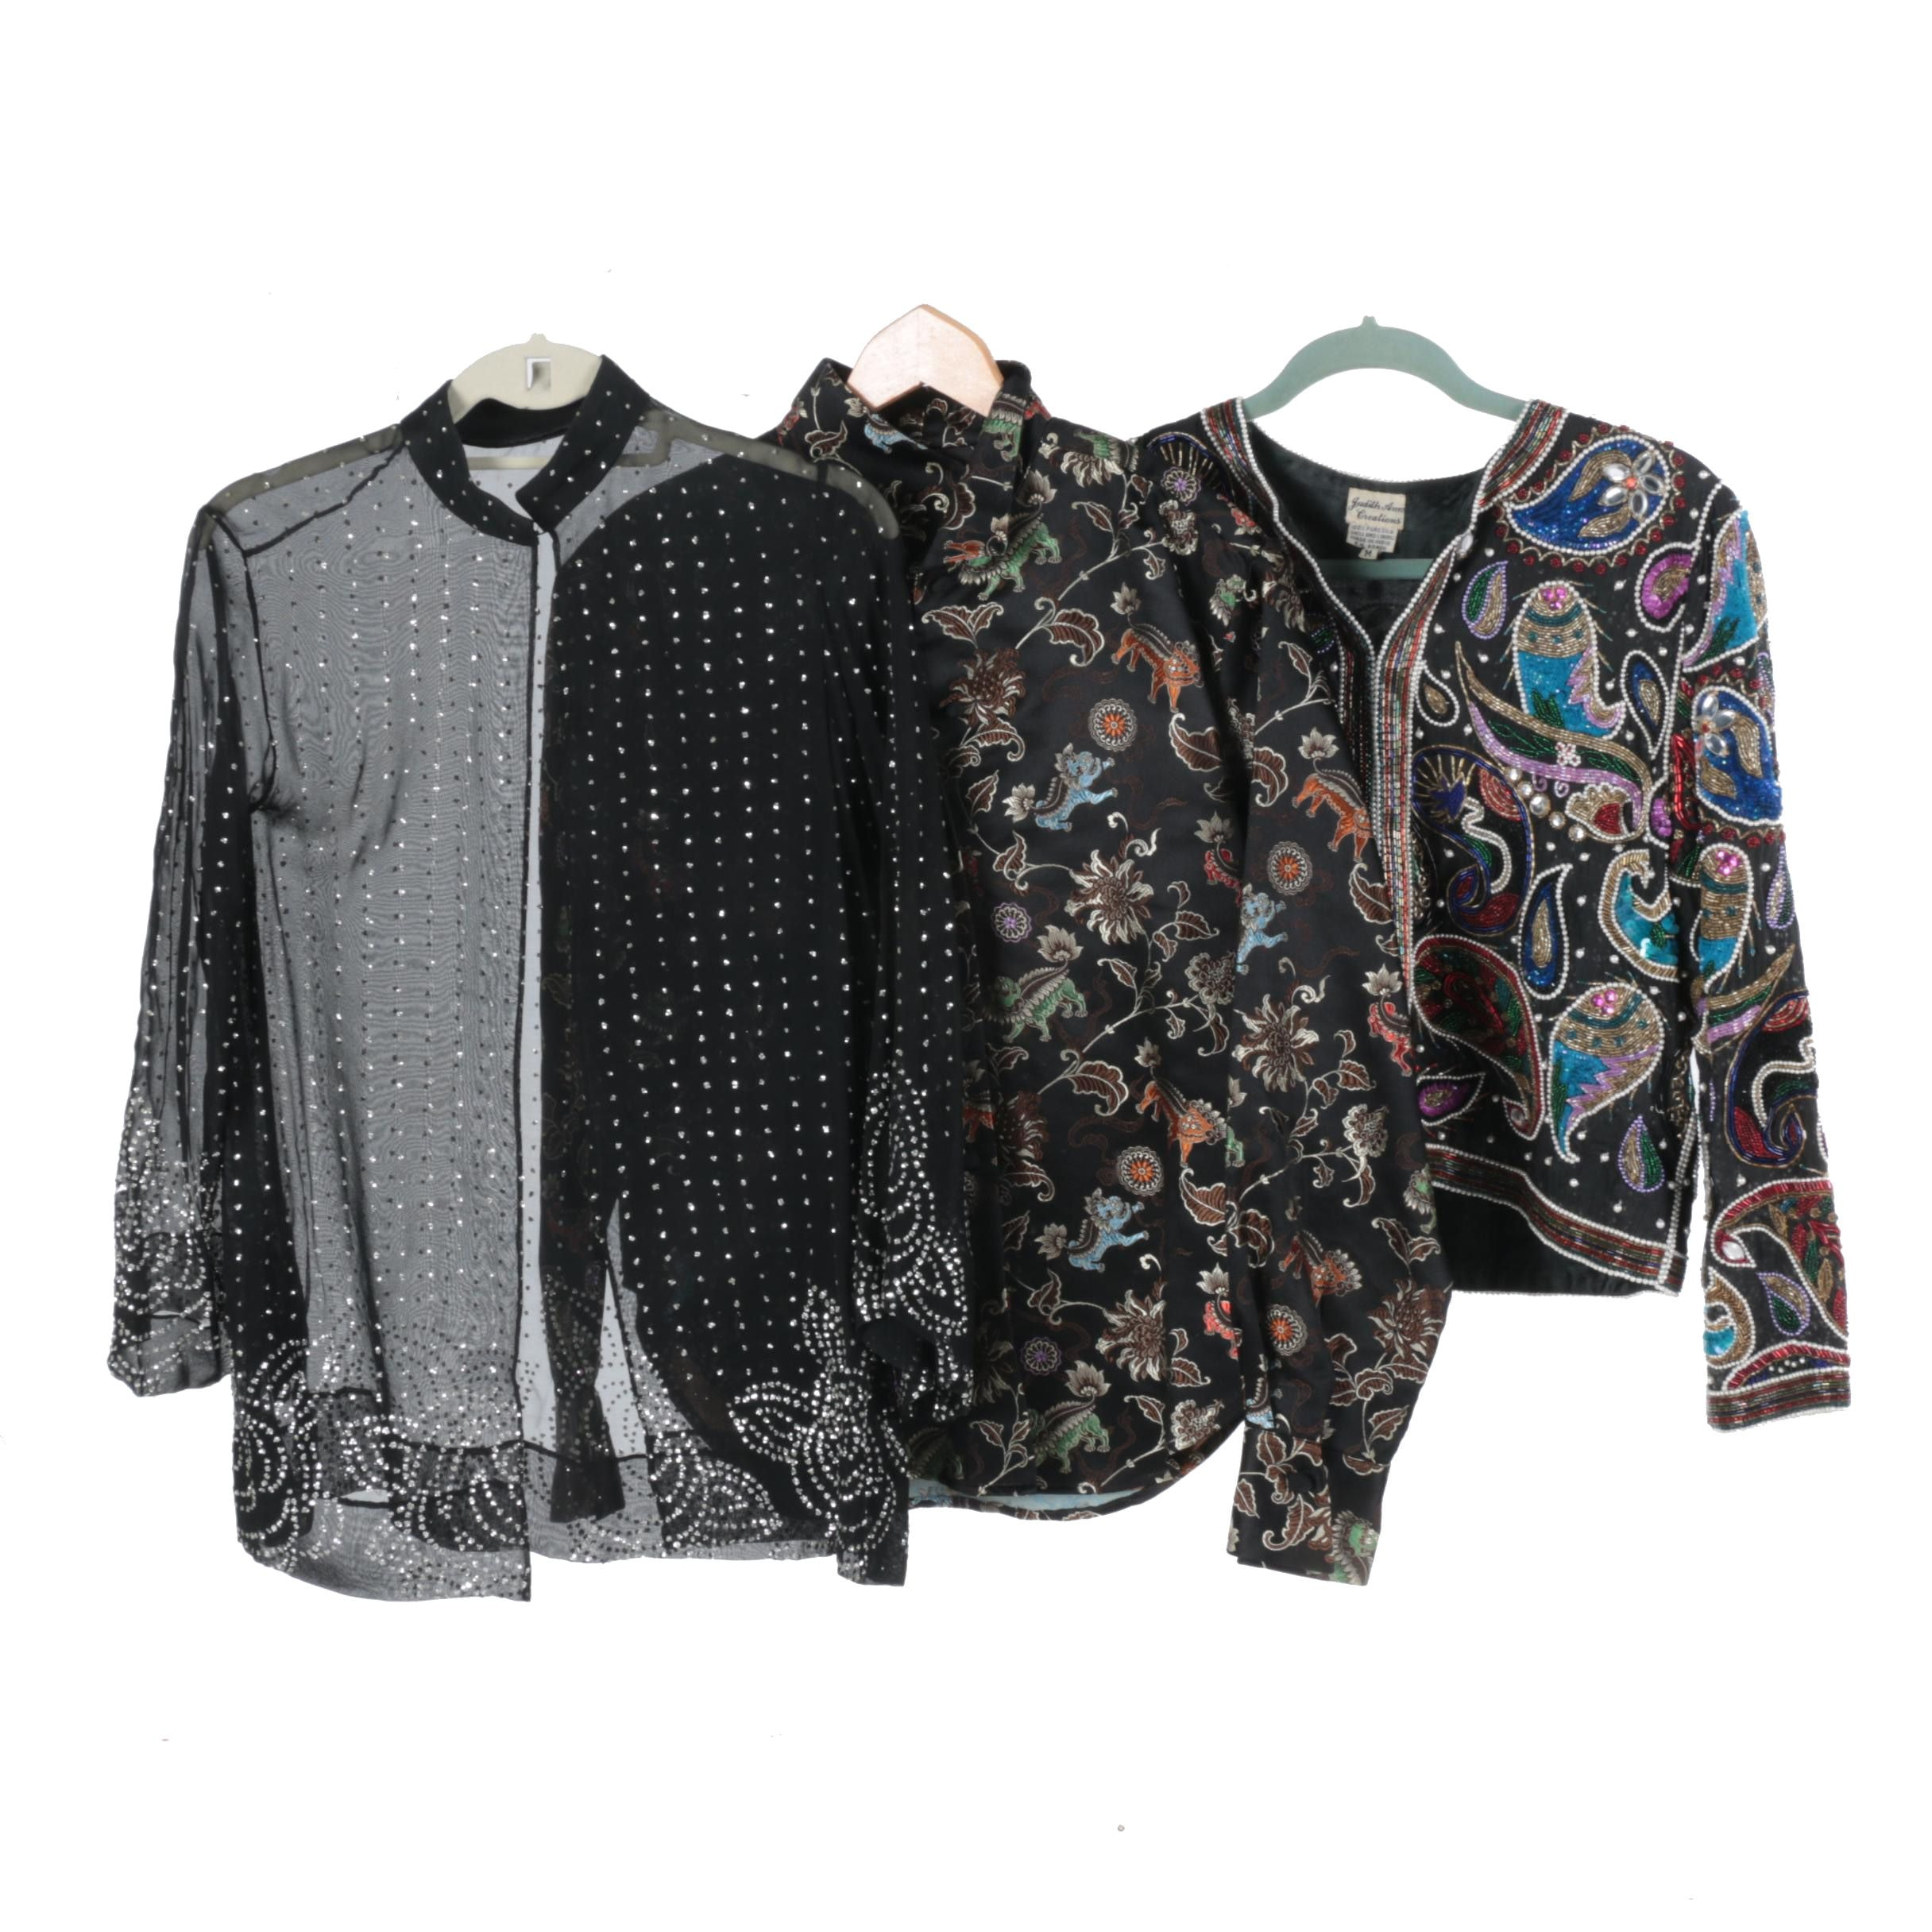 Women's Tops Including Flatiron and Judith Ann Creations